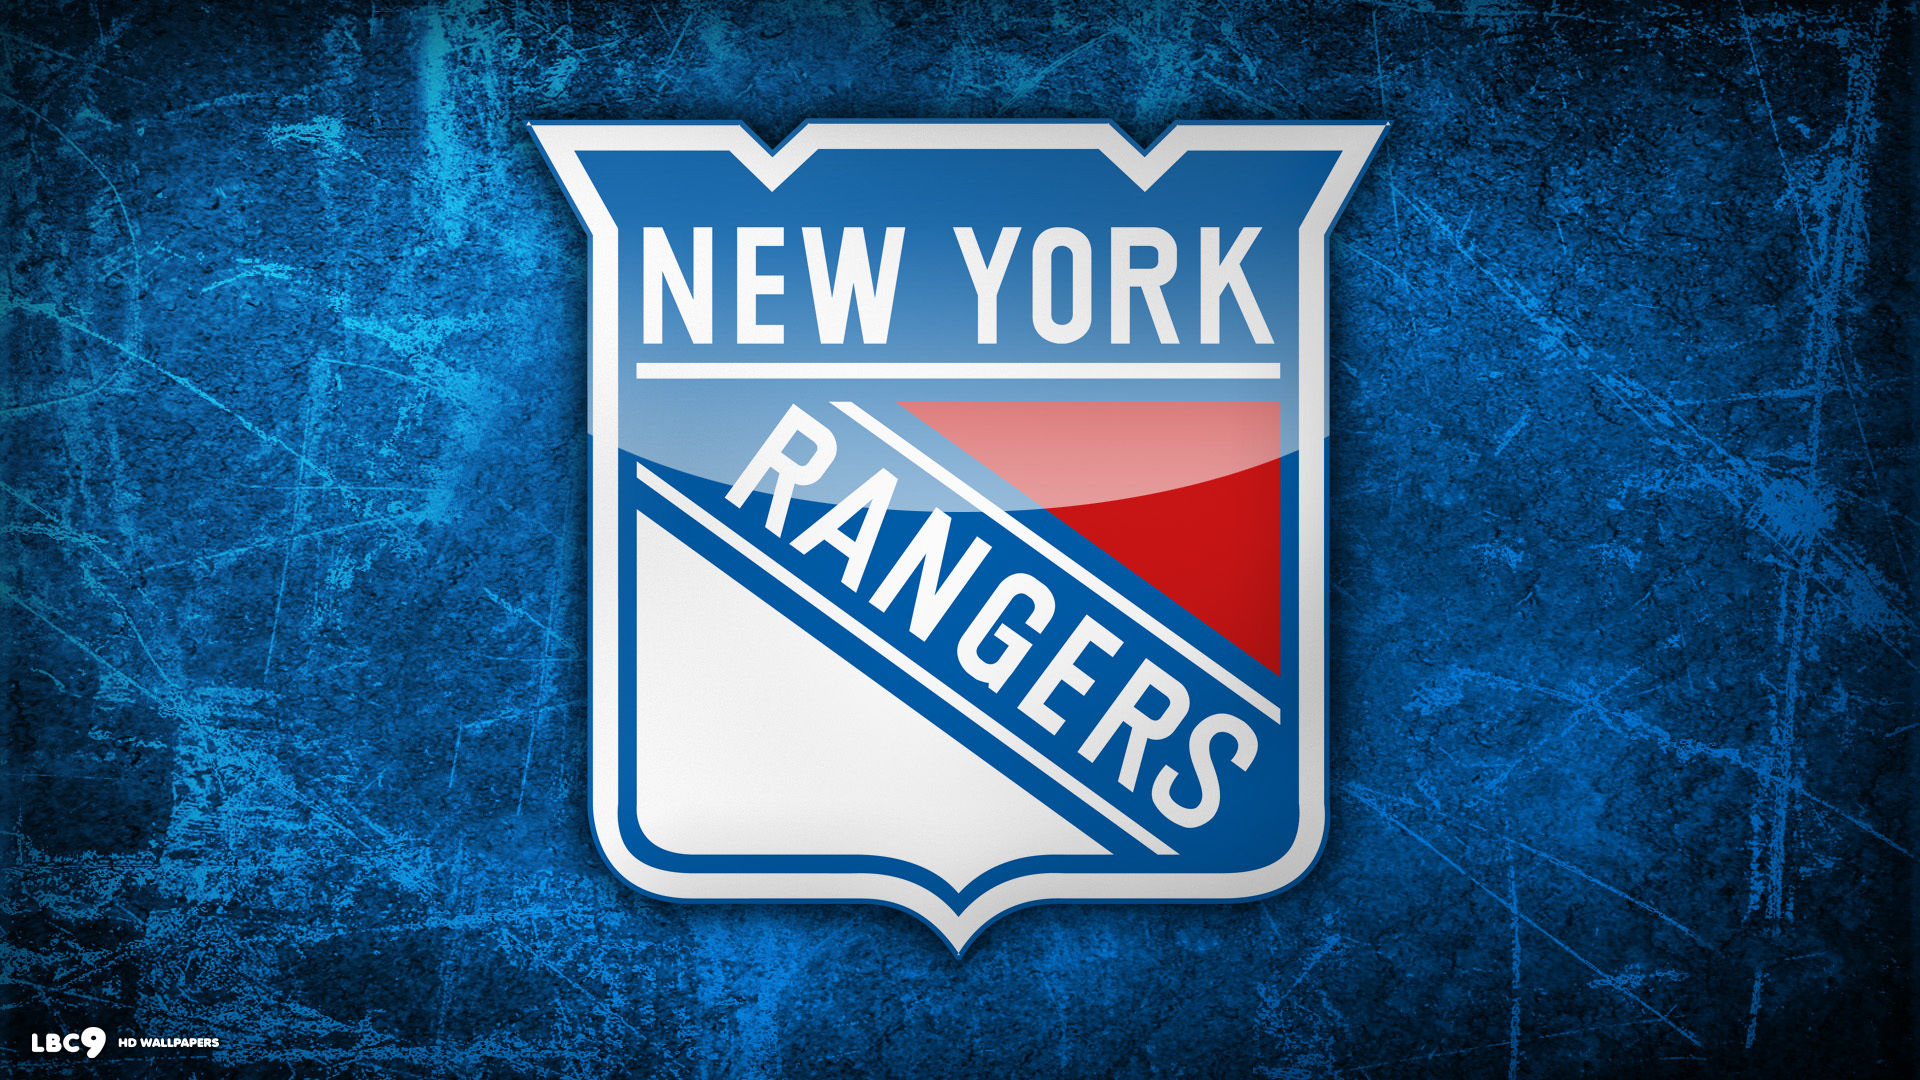 New York Rangers Hockey Logo Wallpaper 1920x1080